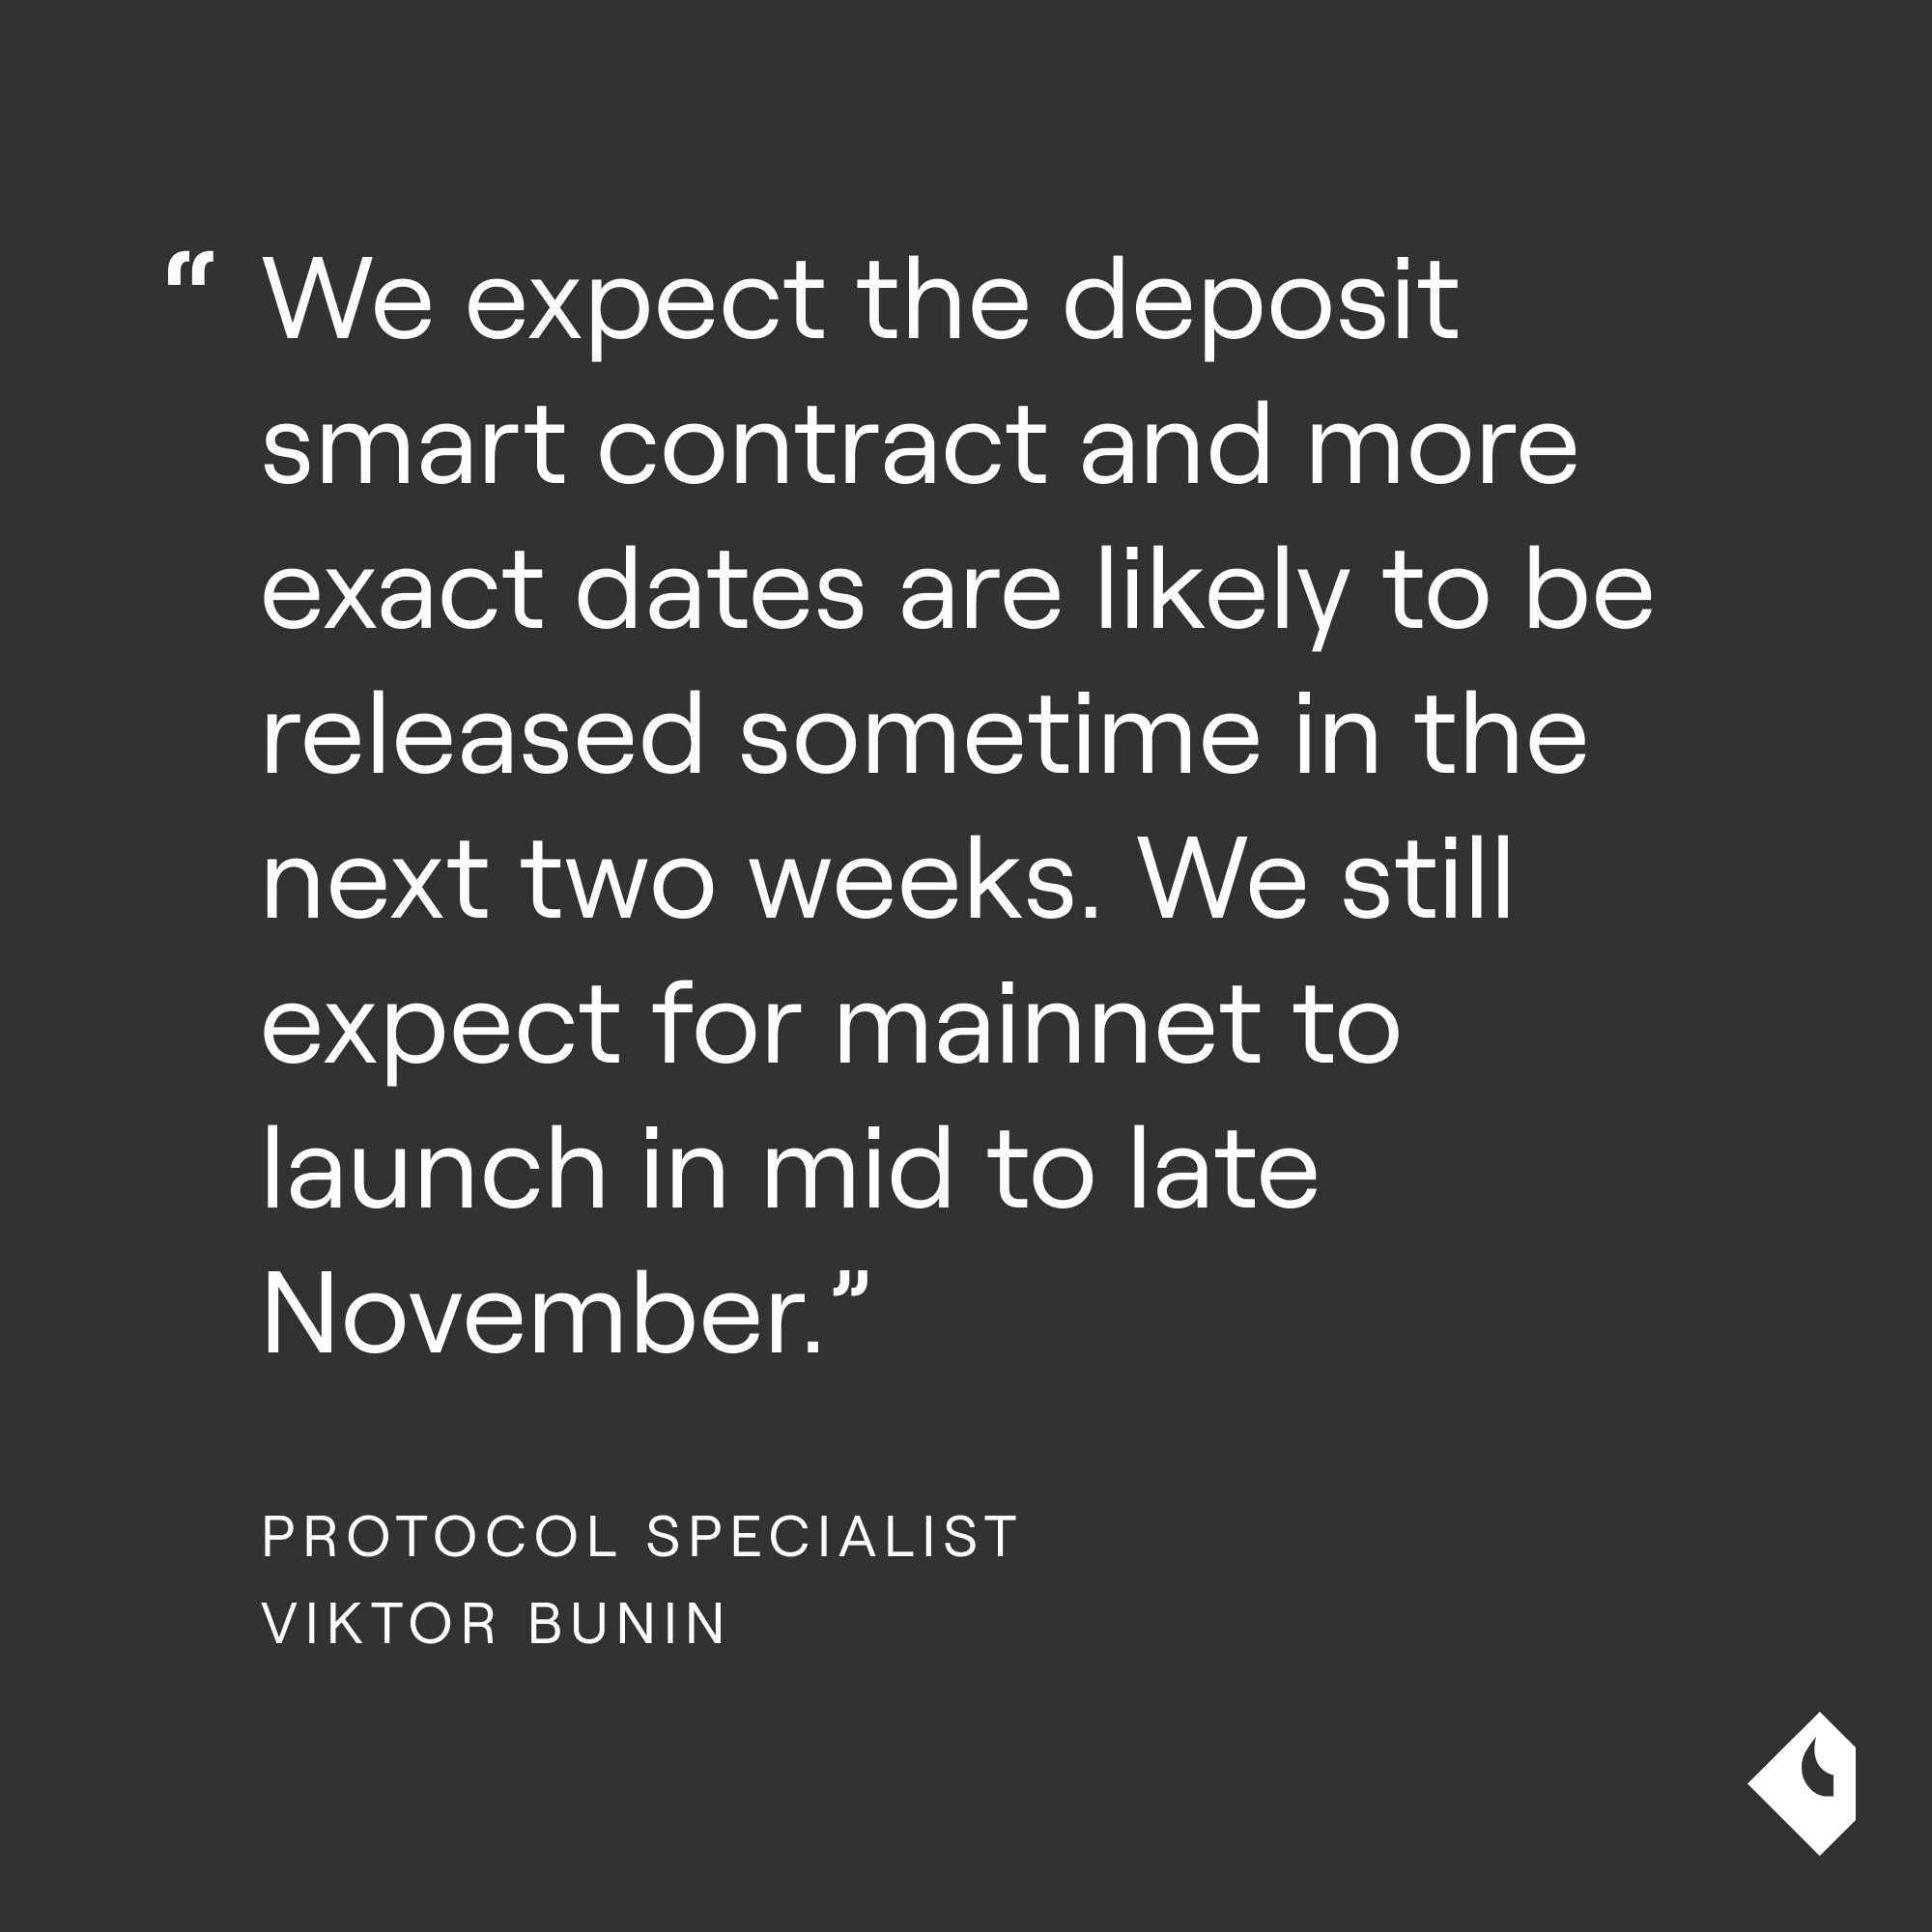 We expect the deposit smart contract and more exact dates are likely to be released sometime in the next two weeks. We still expect for mainnet to launch in mid to late November.